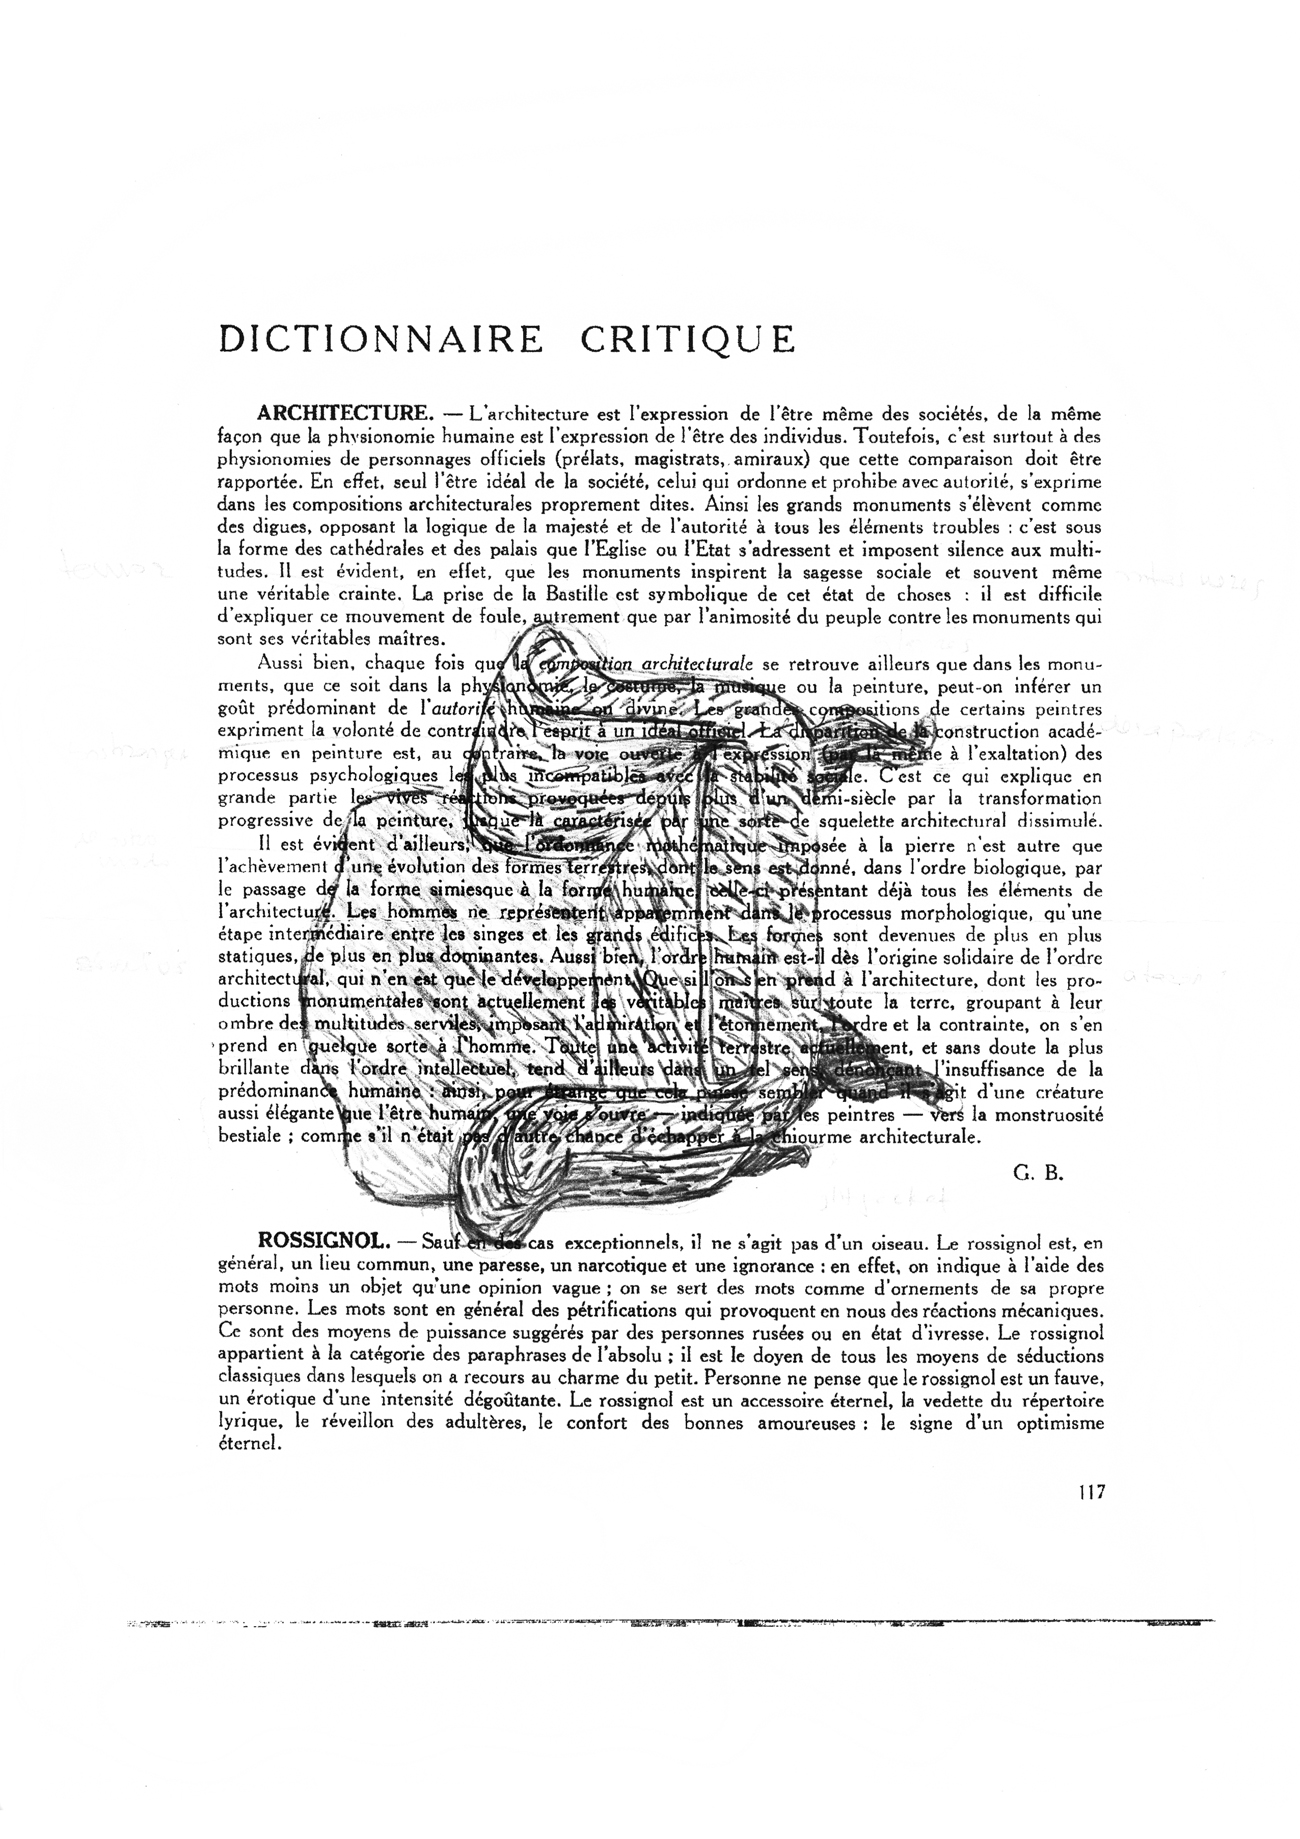 definition of architecture from diccionaire critique with drawing of armchair superimposed